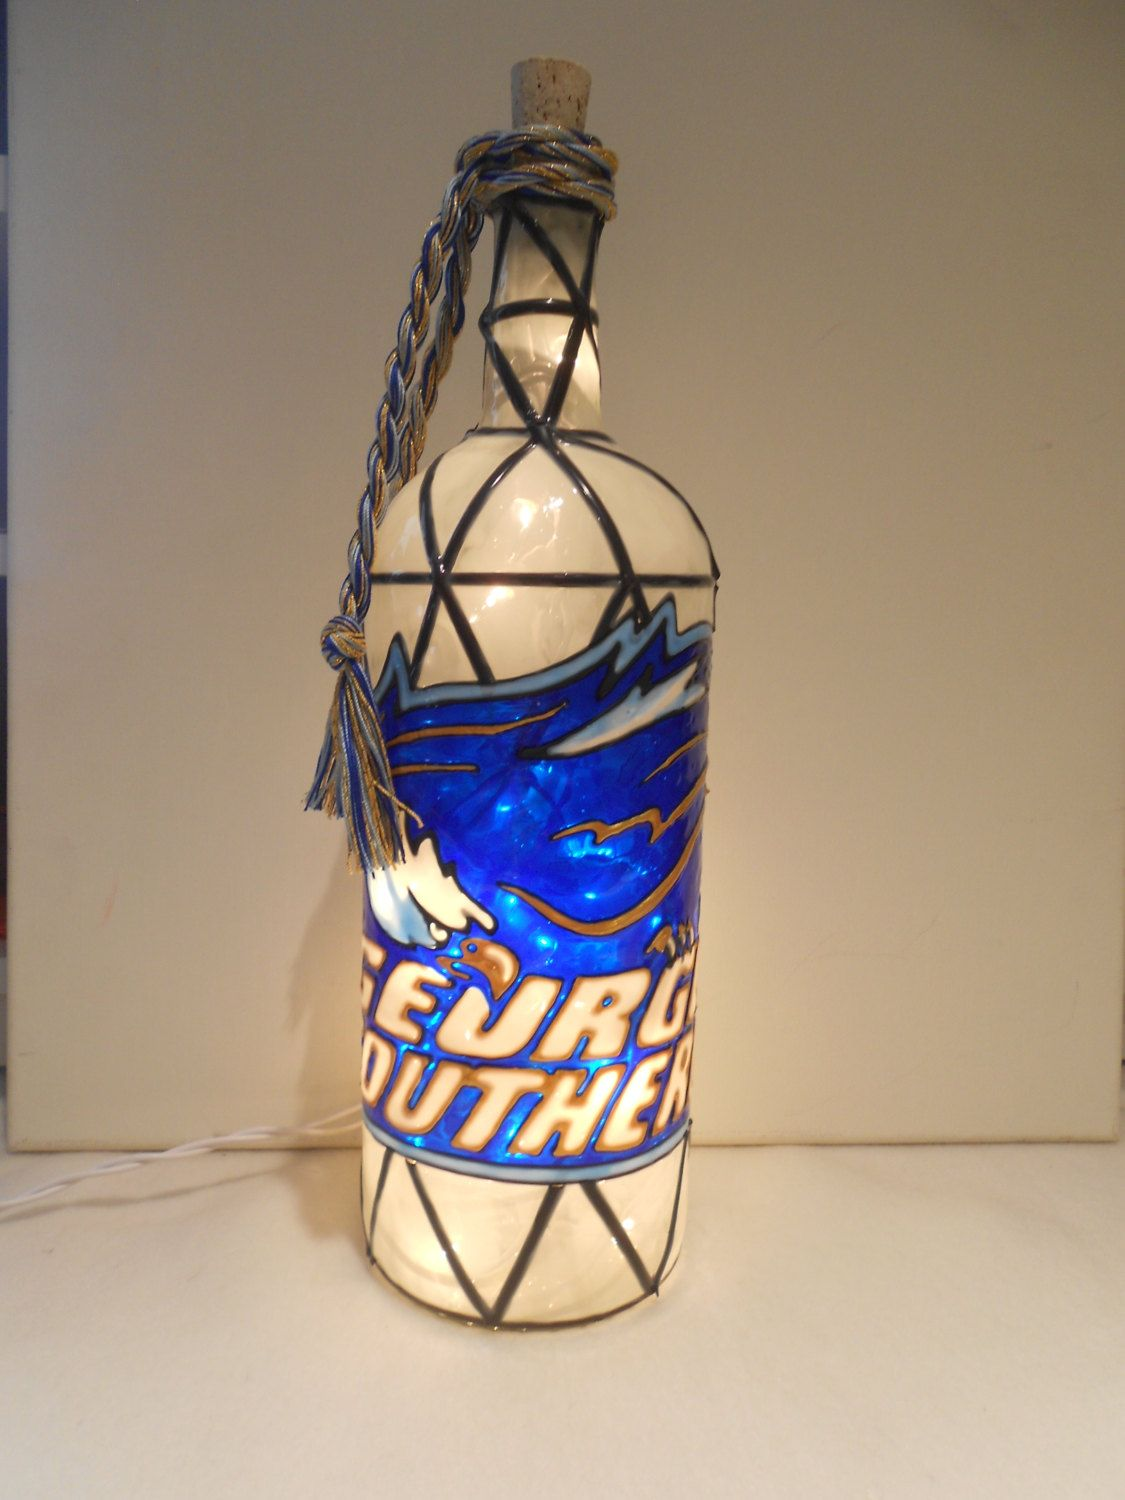 Louisiana State University Inspired Bottle Lamp Handpainted Lighted Stained Glass look.